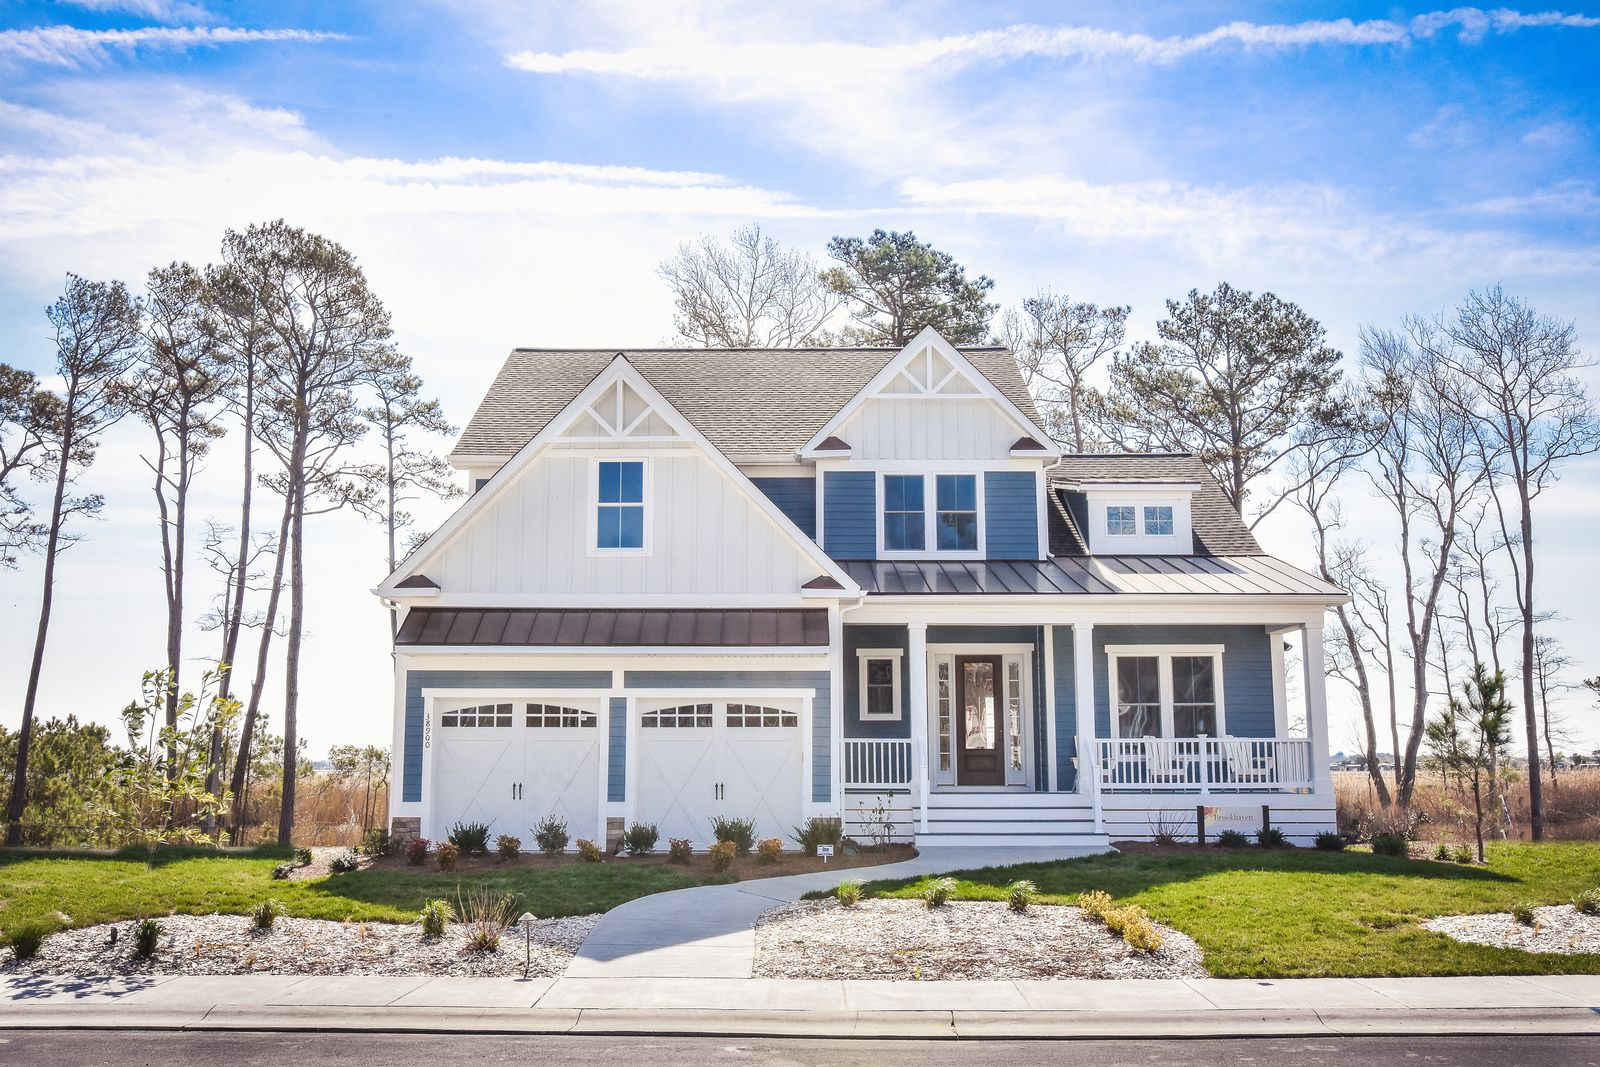 Welcome to Harbor Point:Surrounded by the Great Marsh Preserve, this community offers a unique opportunity to own a new home in downtown Lewes with beautiful natural views.